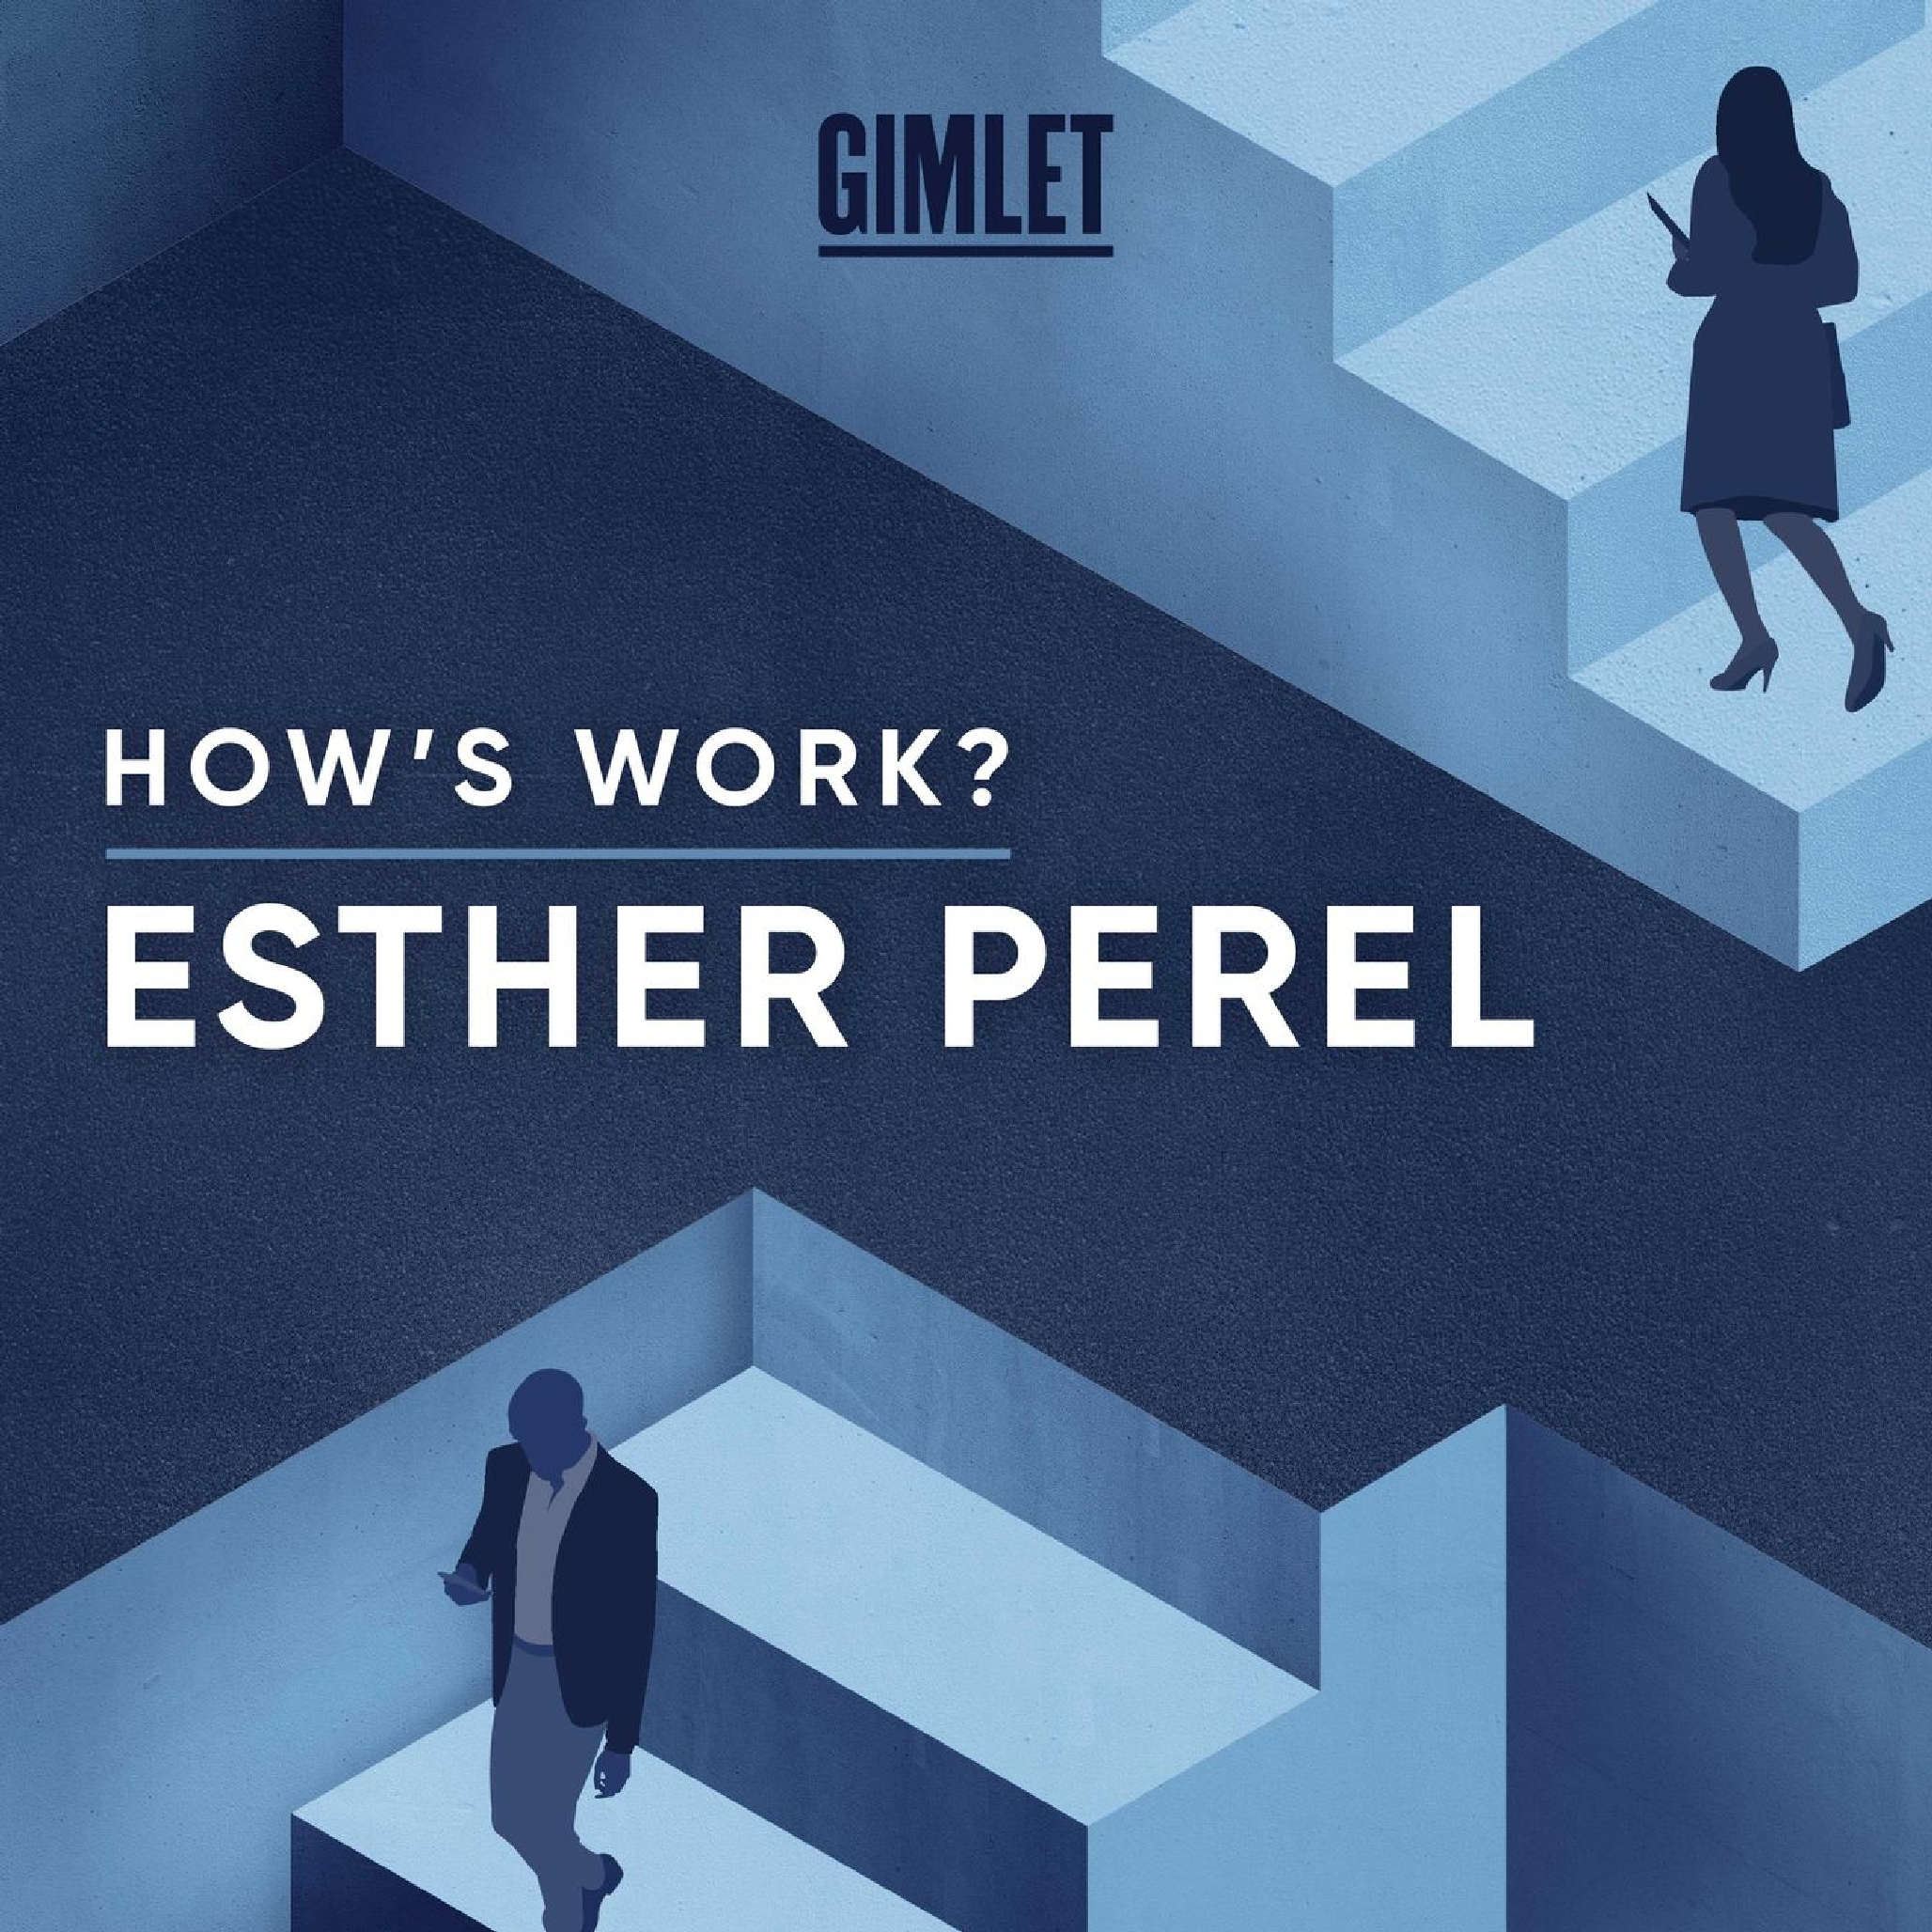 Esther Perel's new podcast debuted in November 2019 as a Spotify exclusive. It will be available on other platforms starting in February 2020.